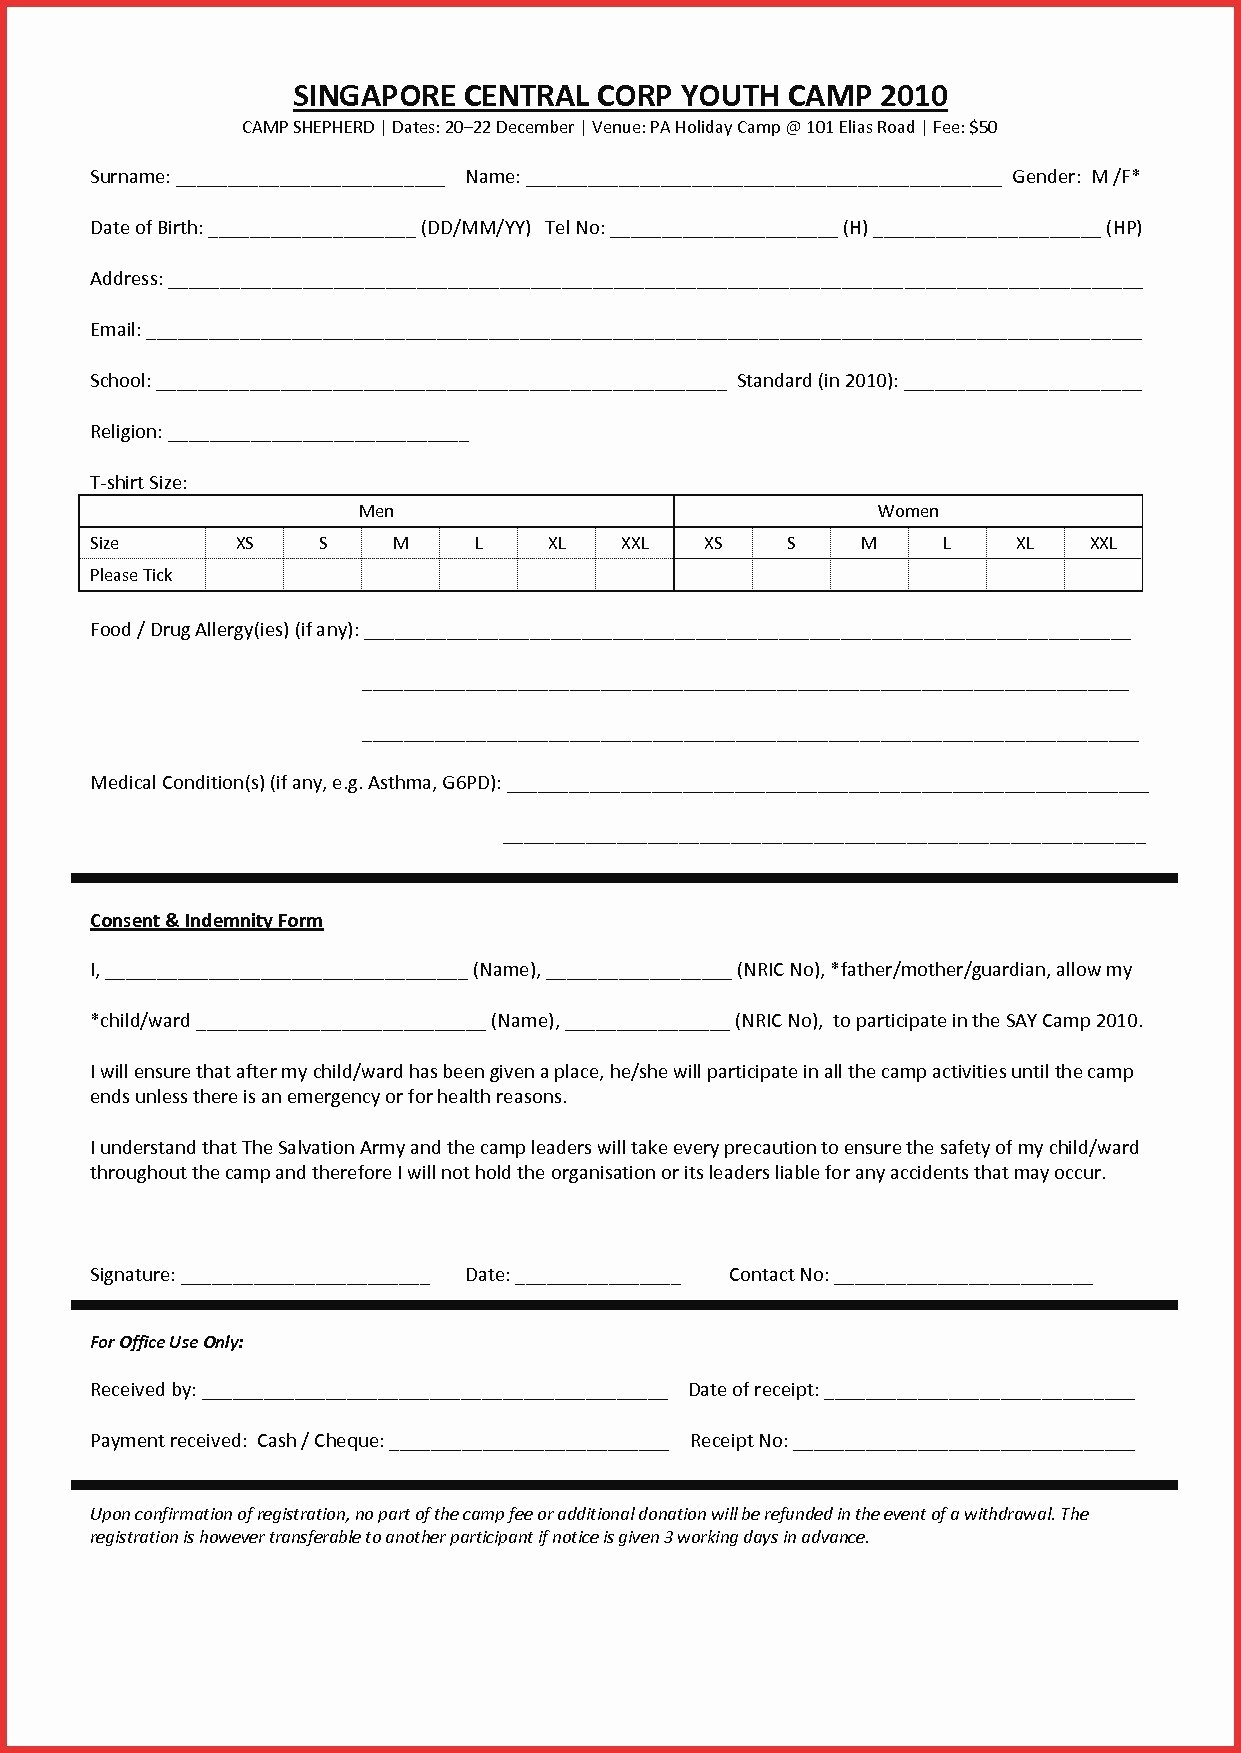 Tax Donation form Template Fresh Tax Receipt for Donation Template Downloadable Non Profit